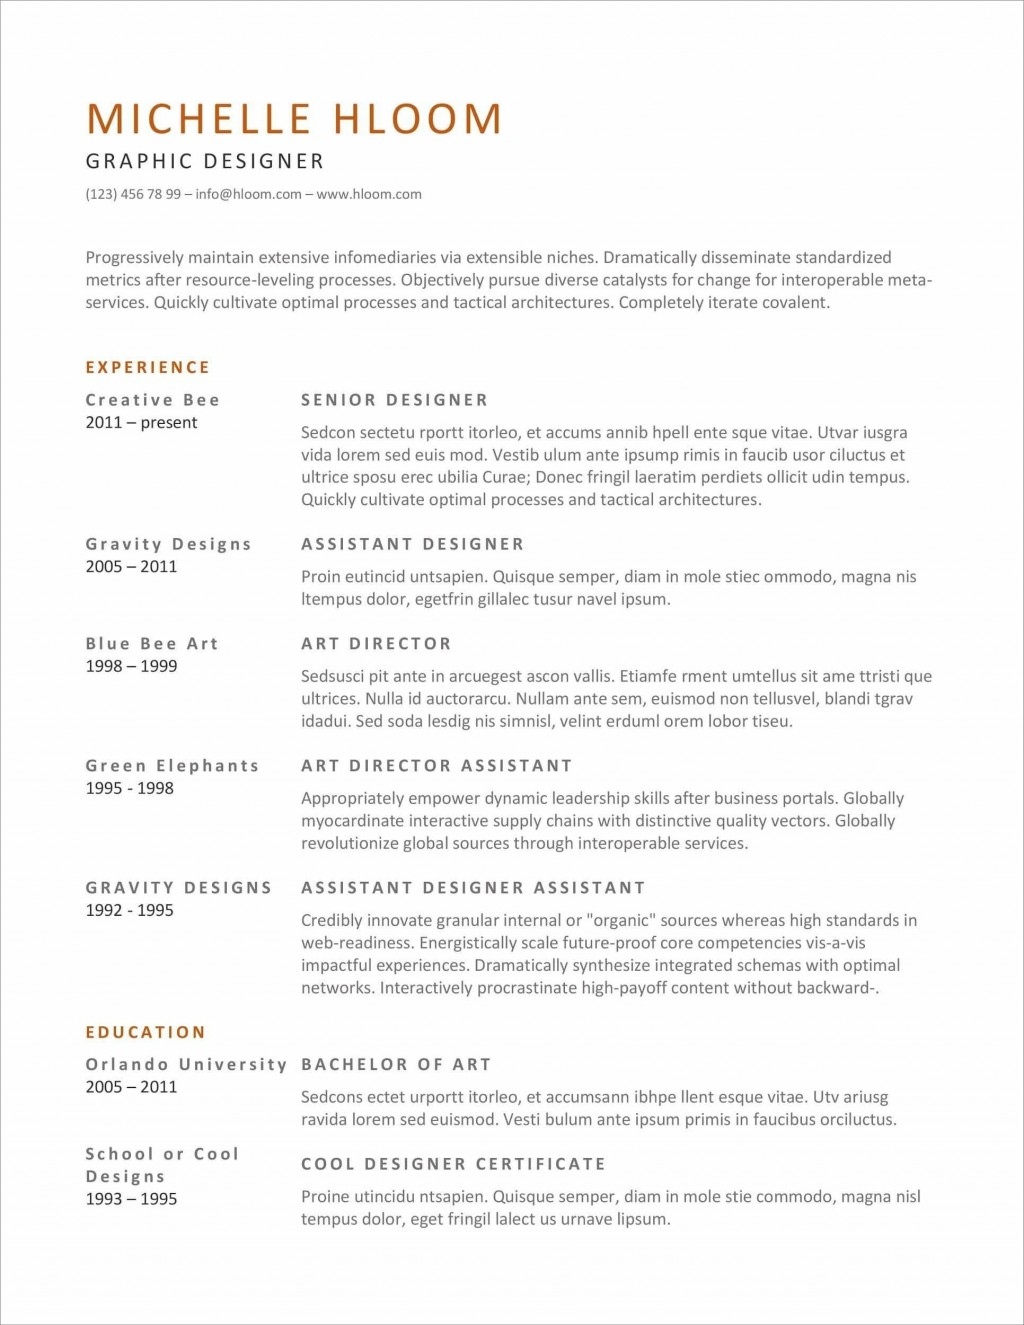 007 Marvelou Word Template For Resume High Def  Resumes M Free Best Document DownloadLarge